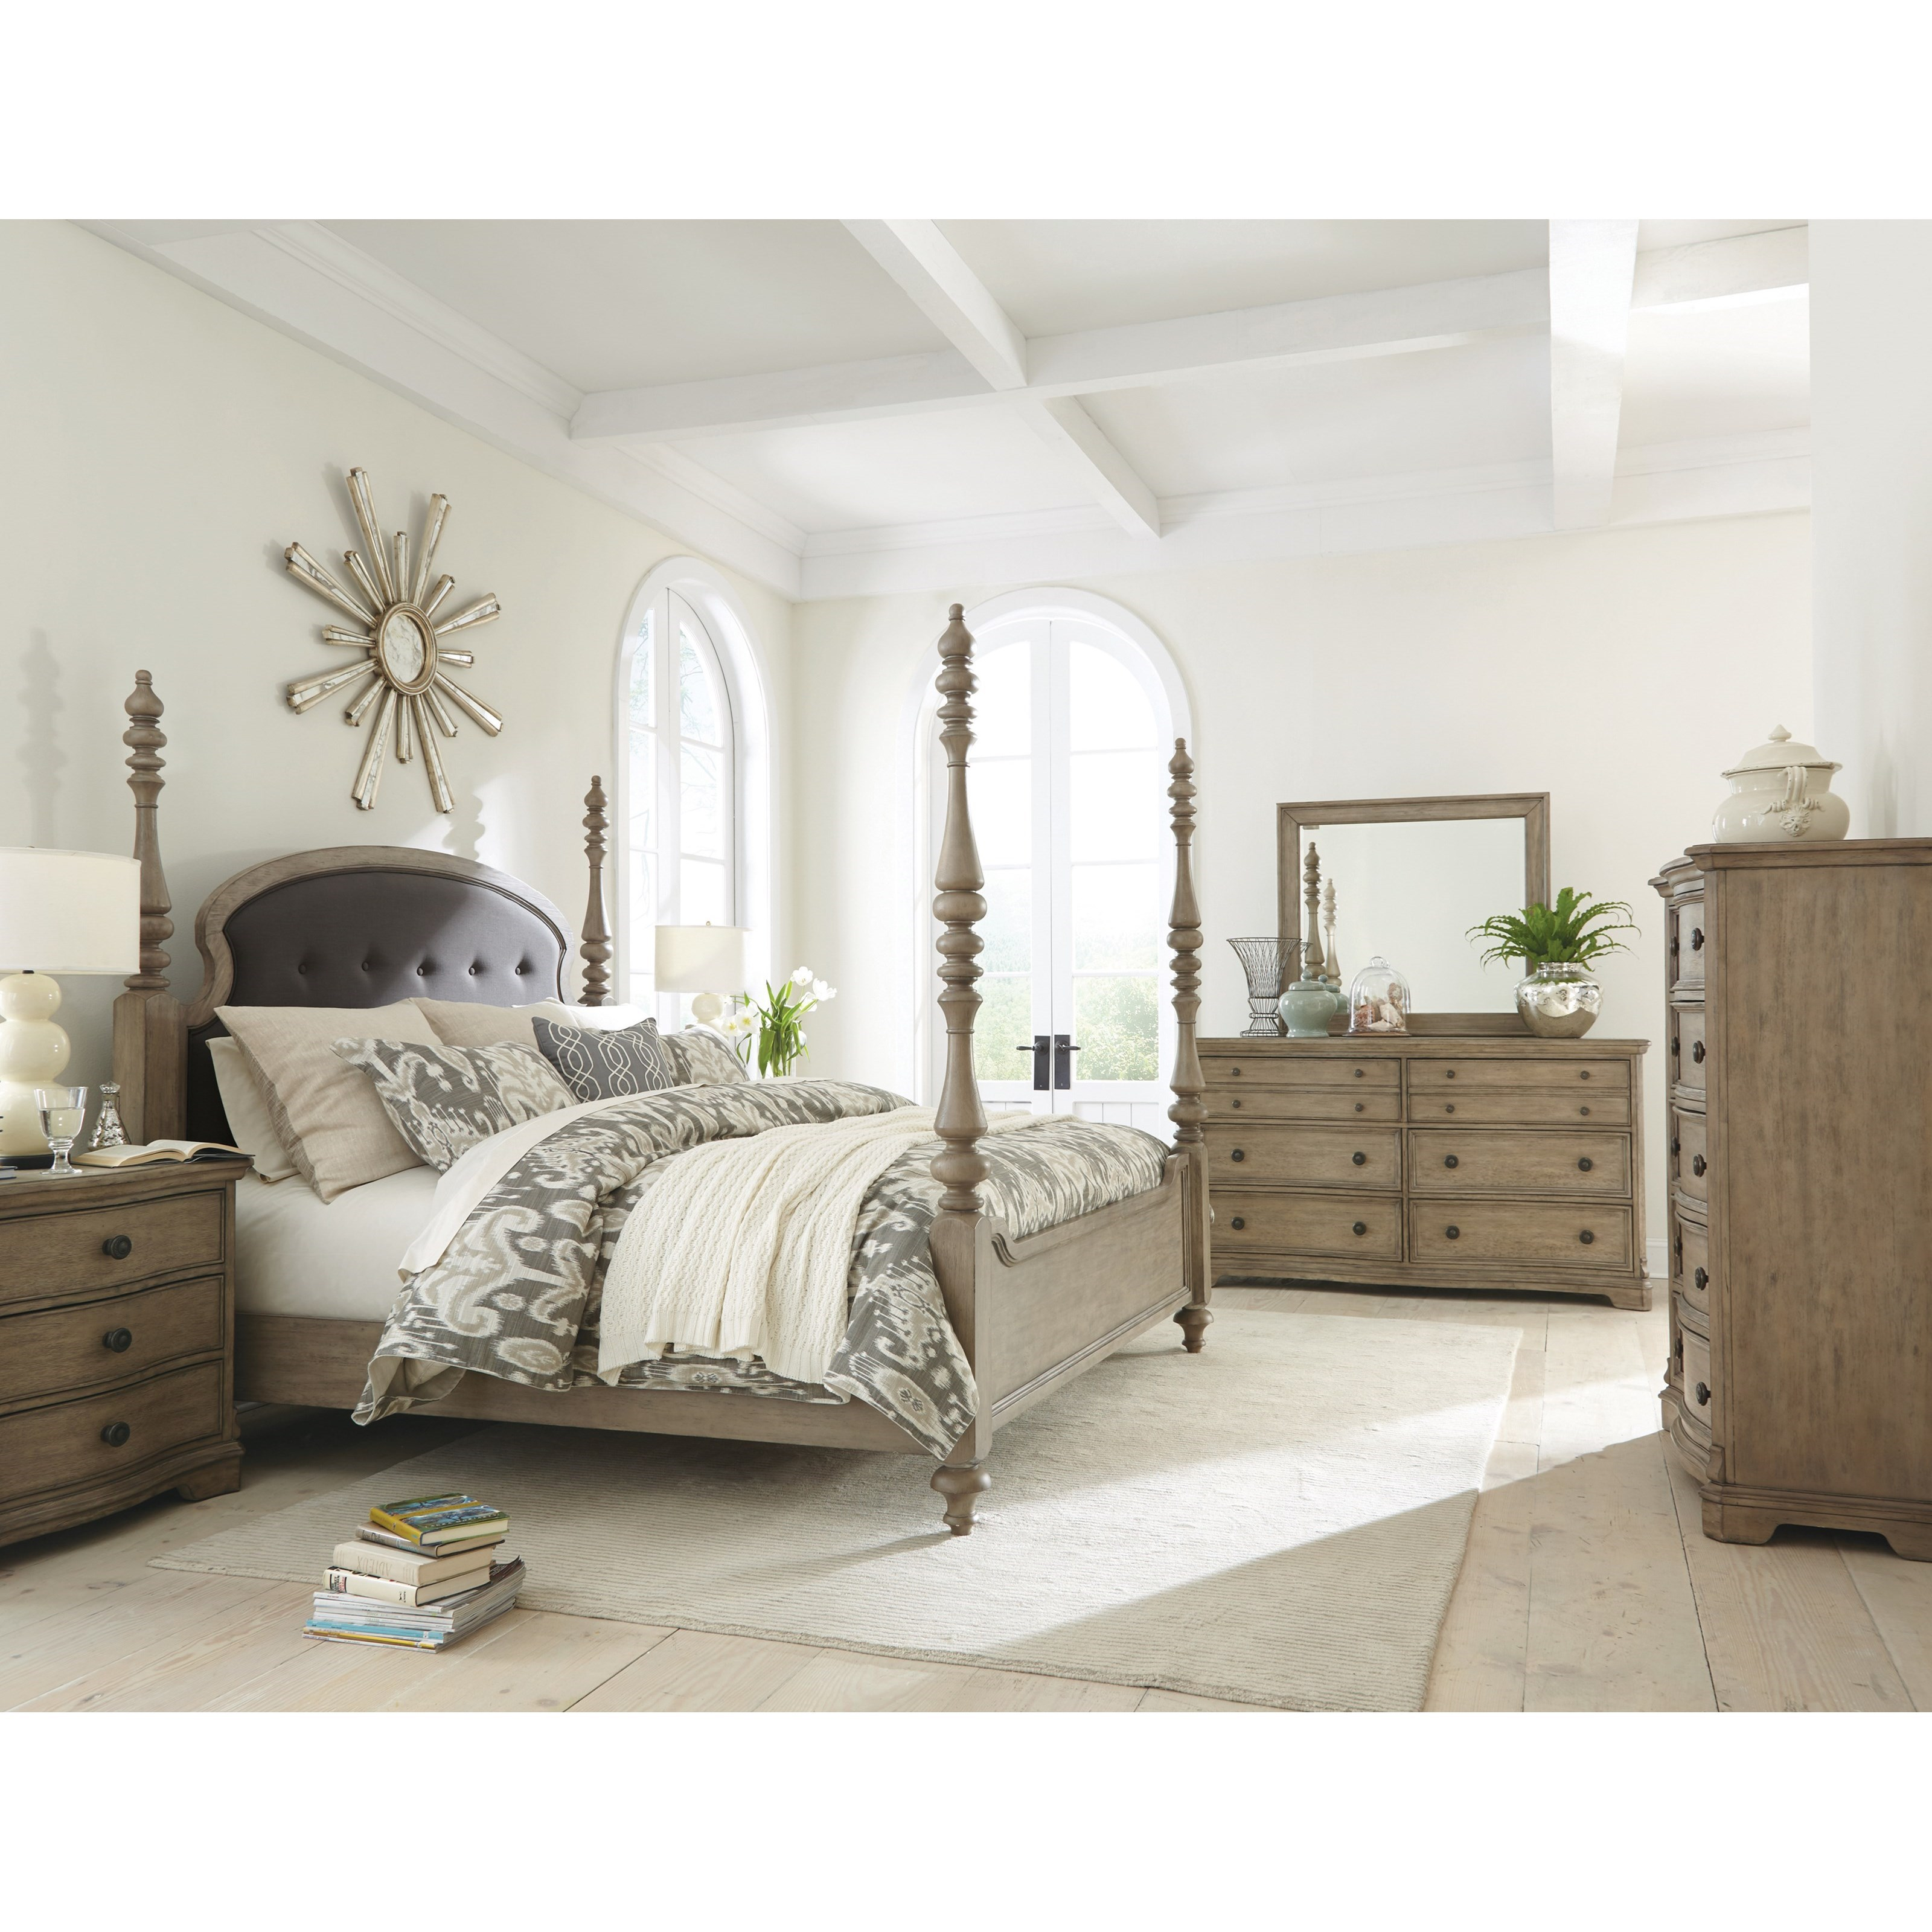 Riverside Furniture Corinne King Bedroom Group 3 - Item Number: 215 K Bedroom Group 3